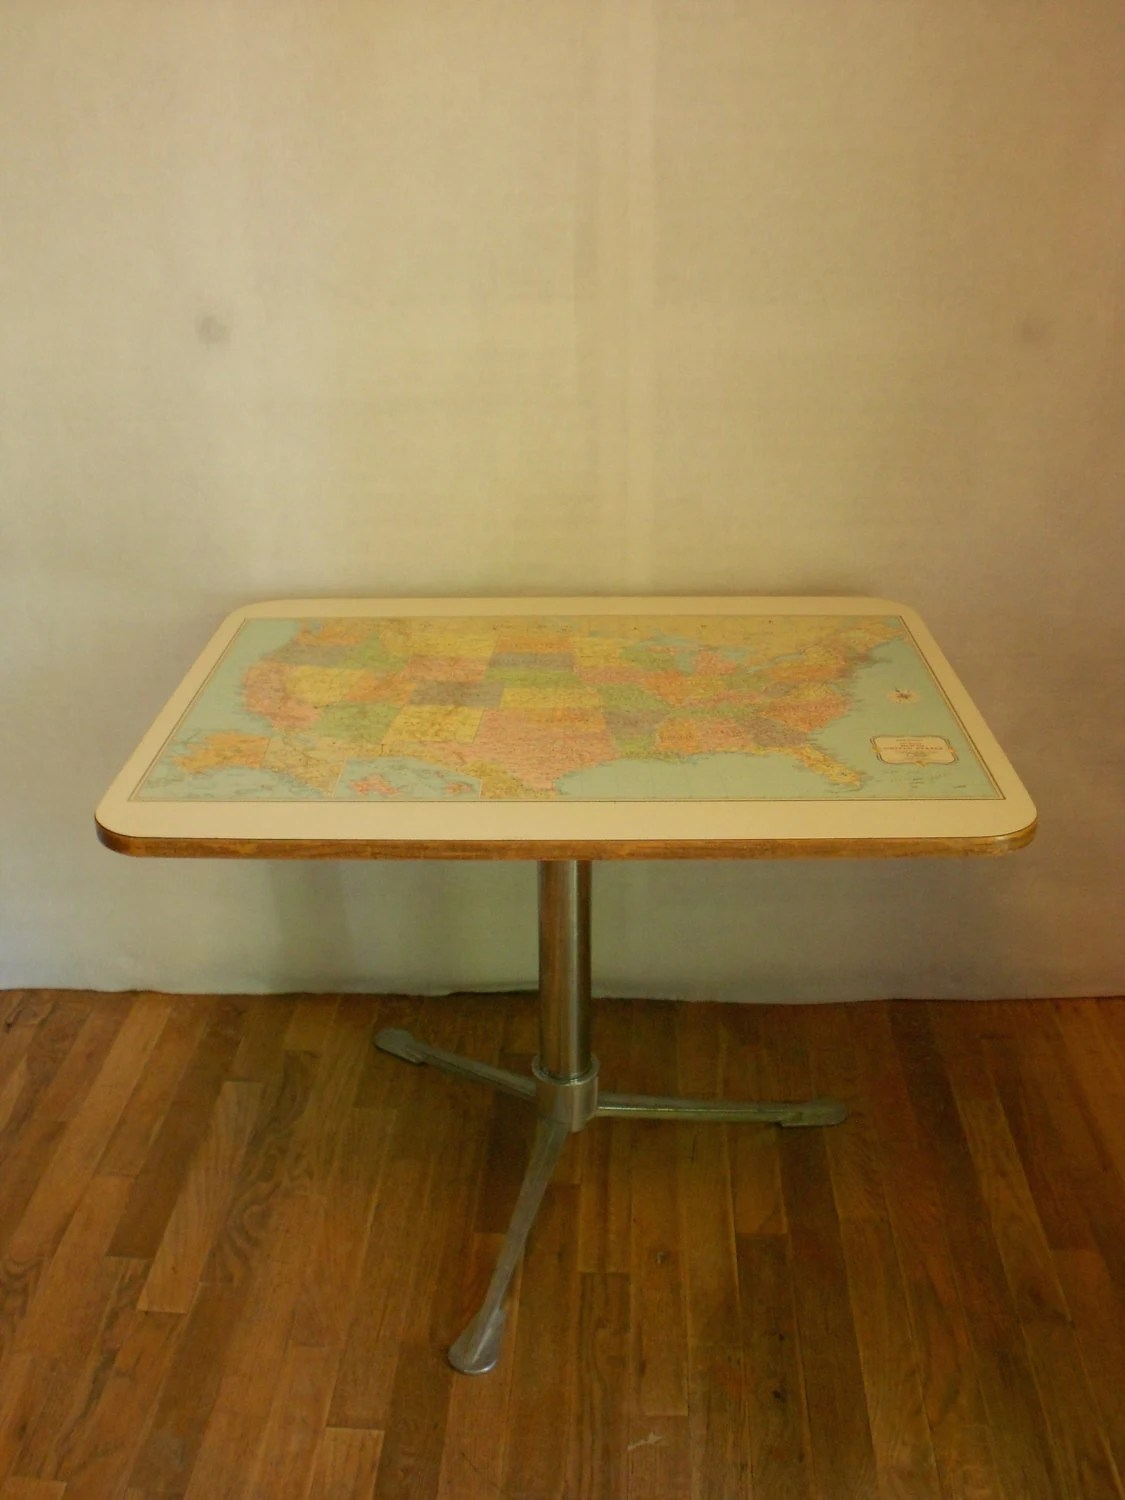 outdoor aluminum chairs office chair no wheels uk vintage usa map table from camper trailer with original tripod